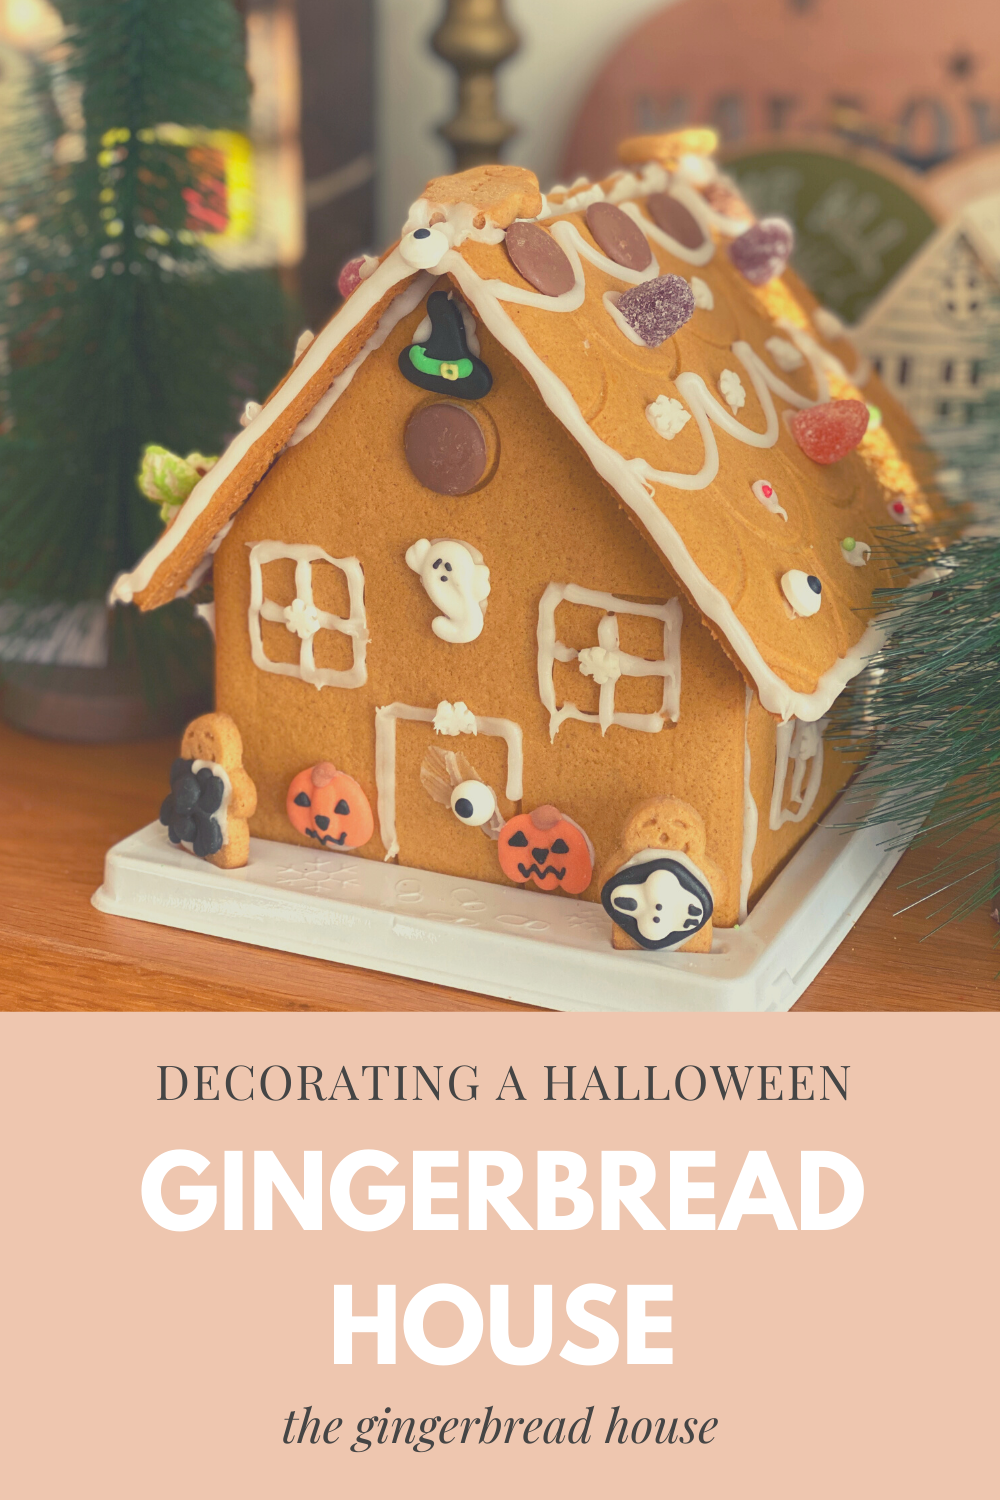 Decorating a gingerbread house for Halloween